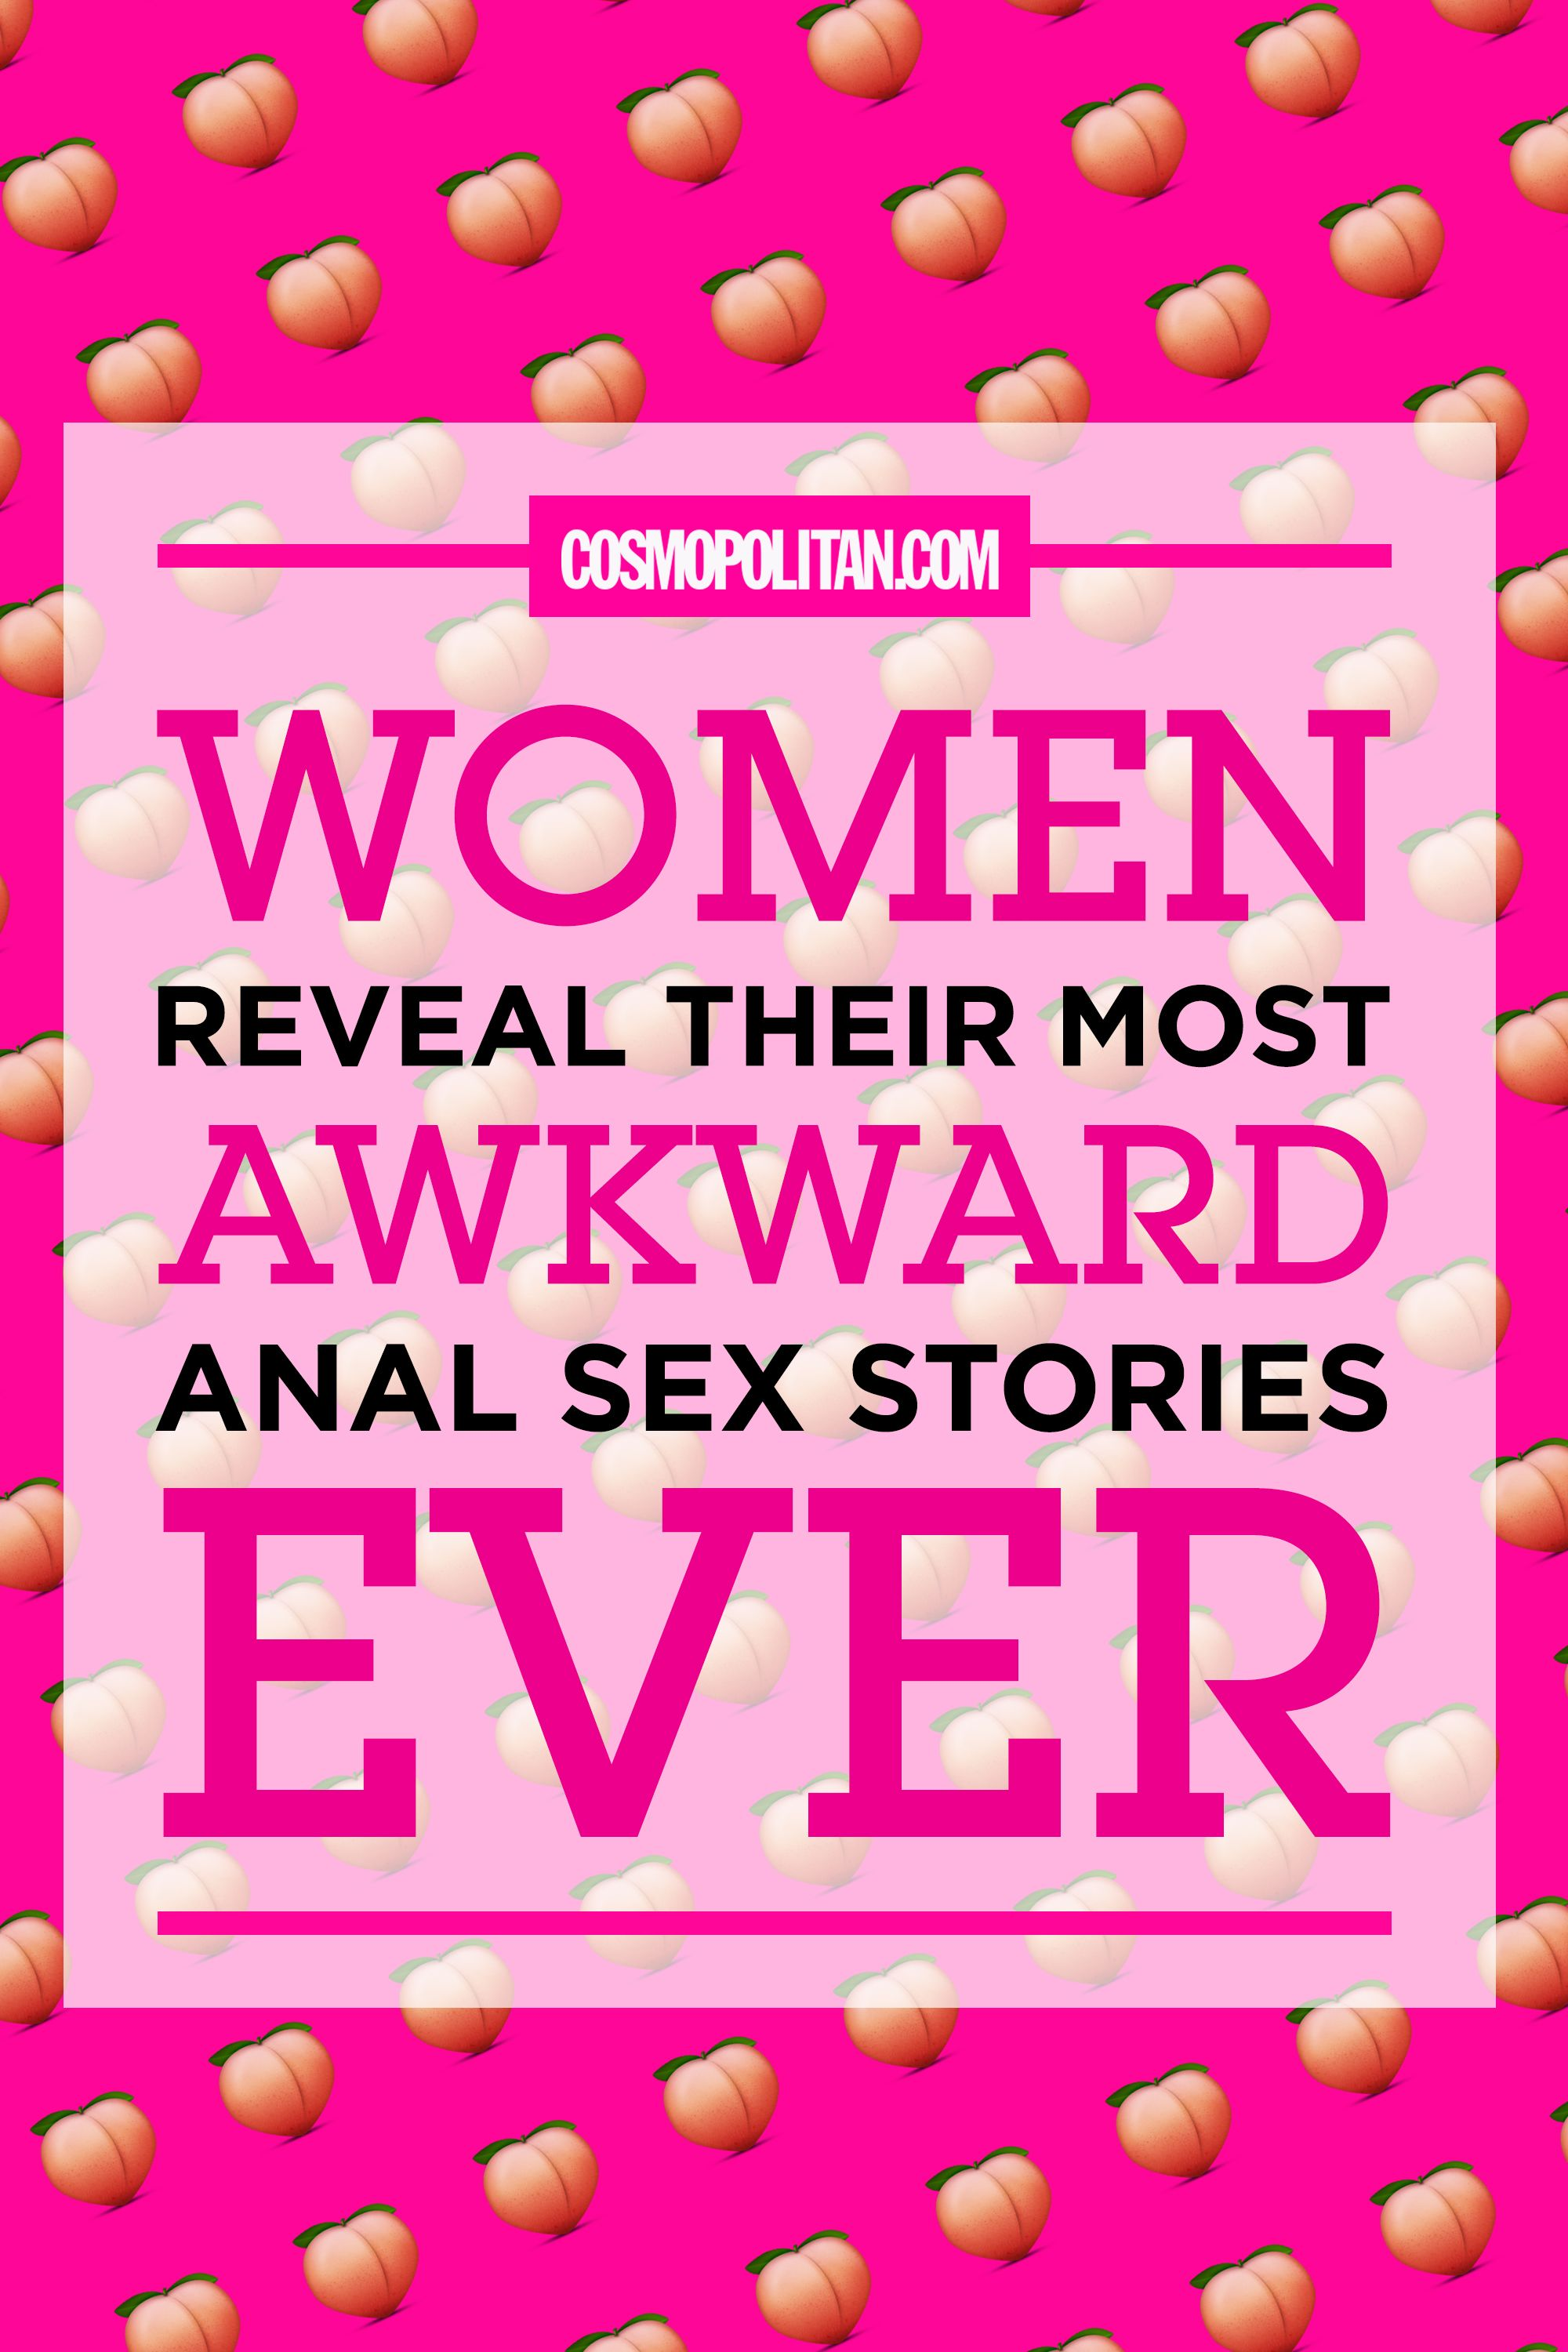 Anal sex stories from women